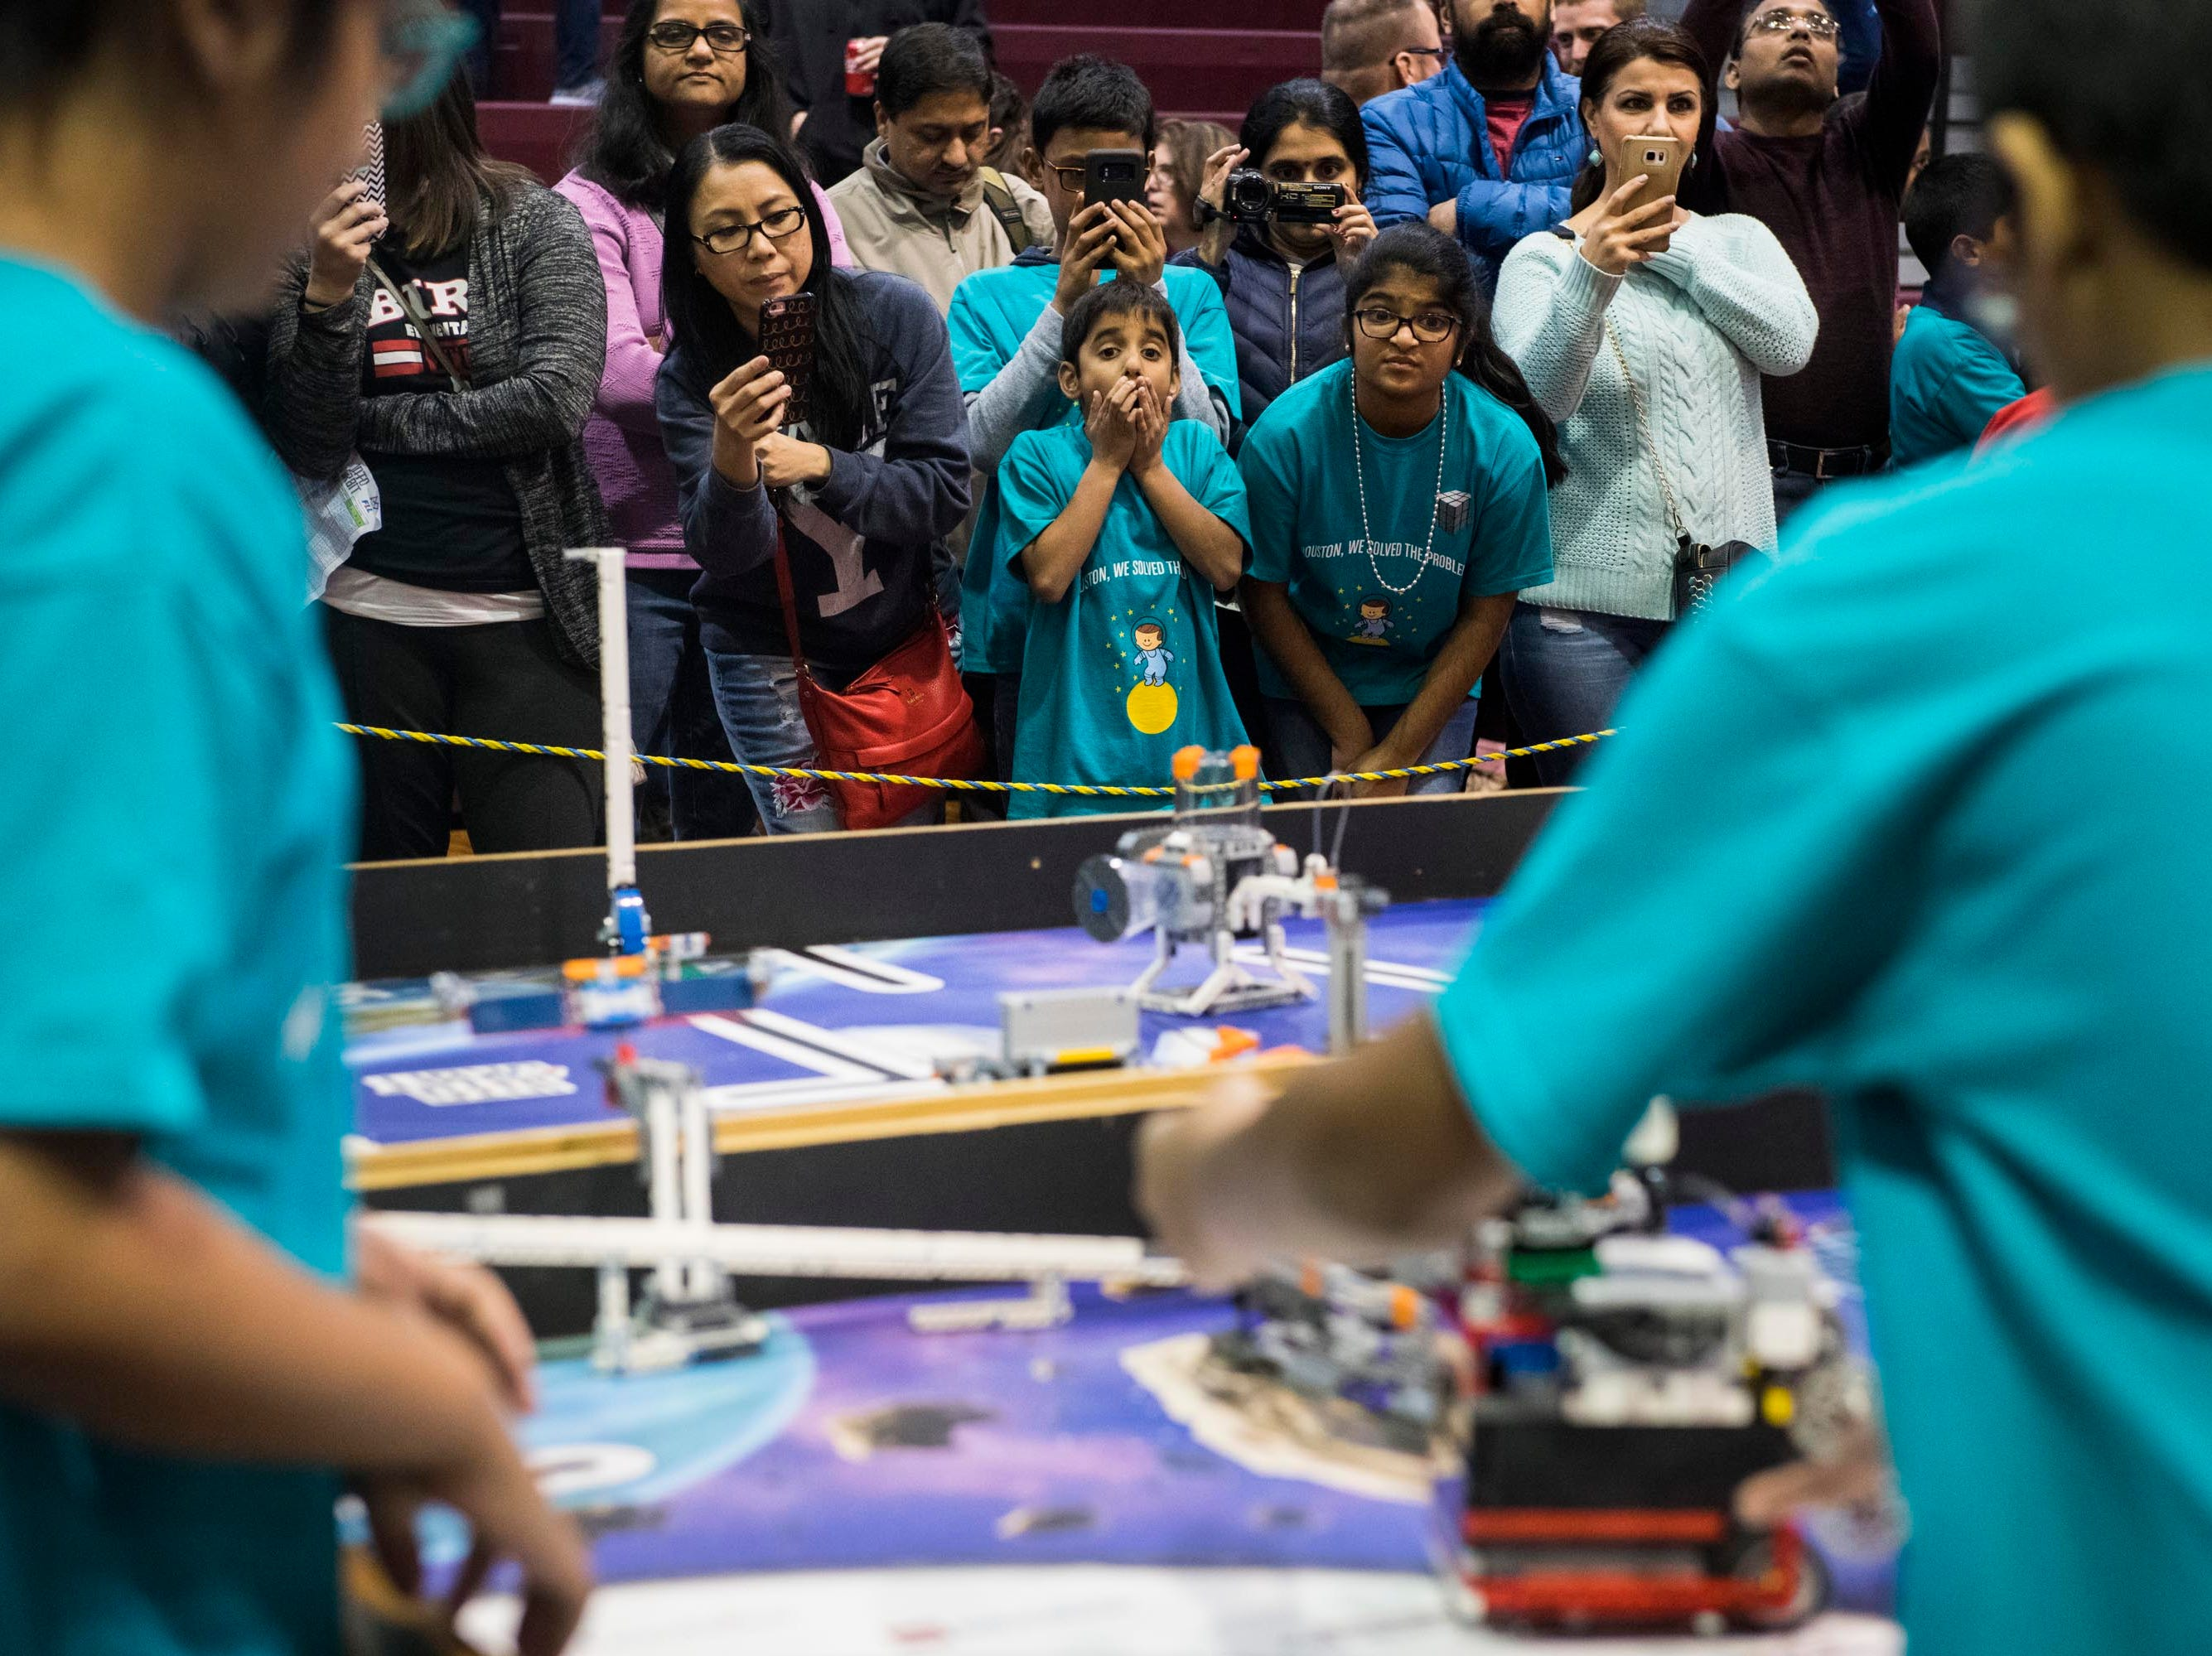 Guru Raja, 9, of Troy, left, and Aditi Gunukula, 10, of Troy, right, of the 'Houston, We Solved the Problem' robotics team nervously watch their teammates compete.